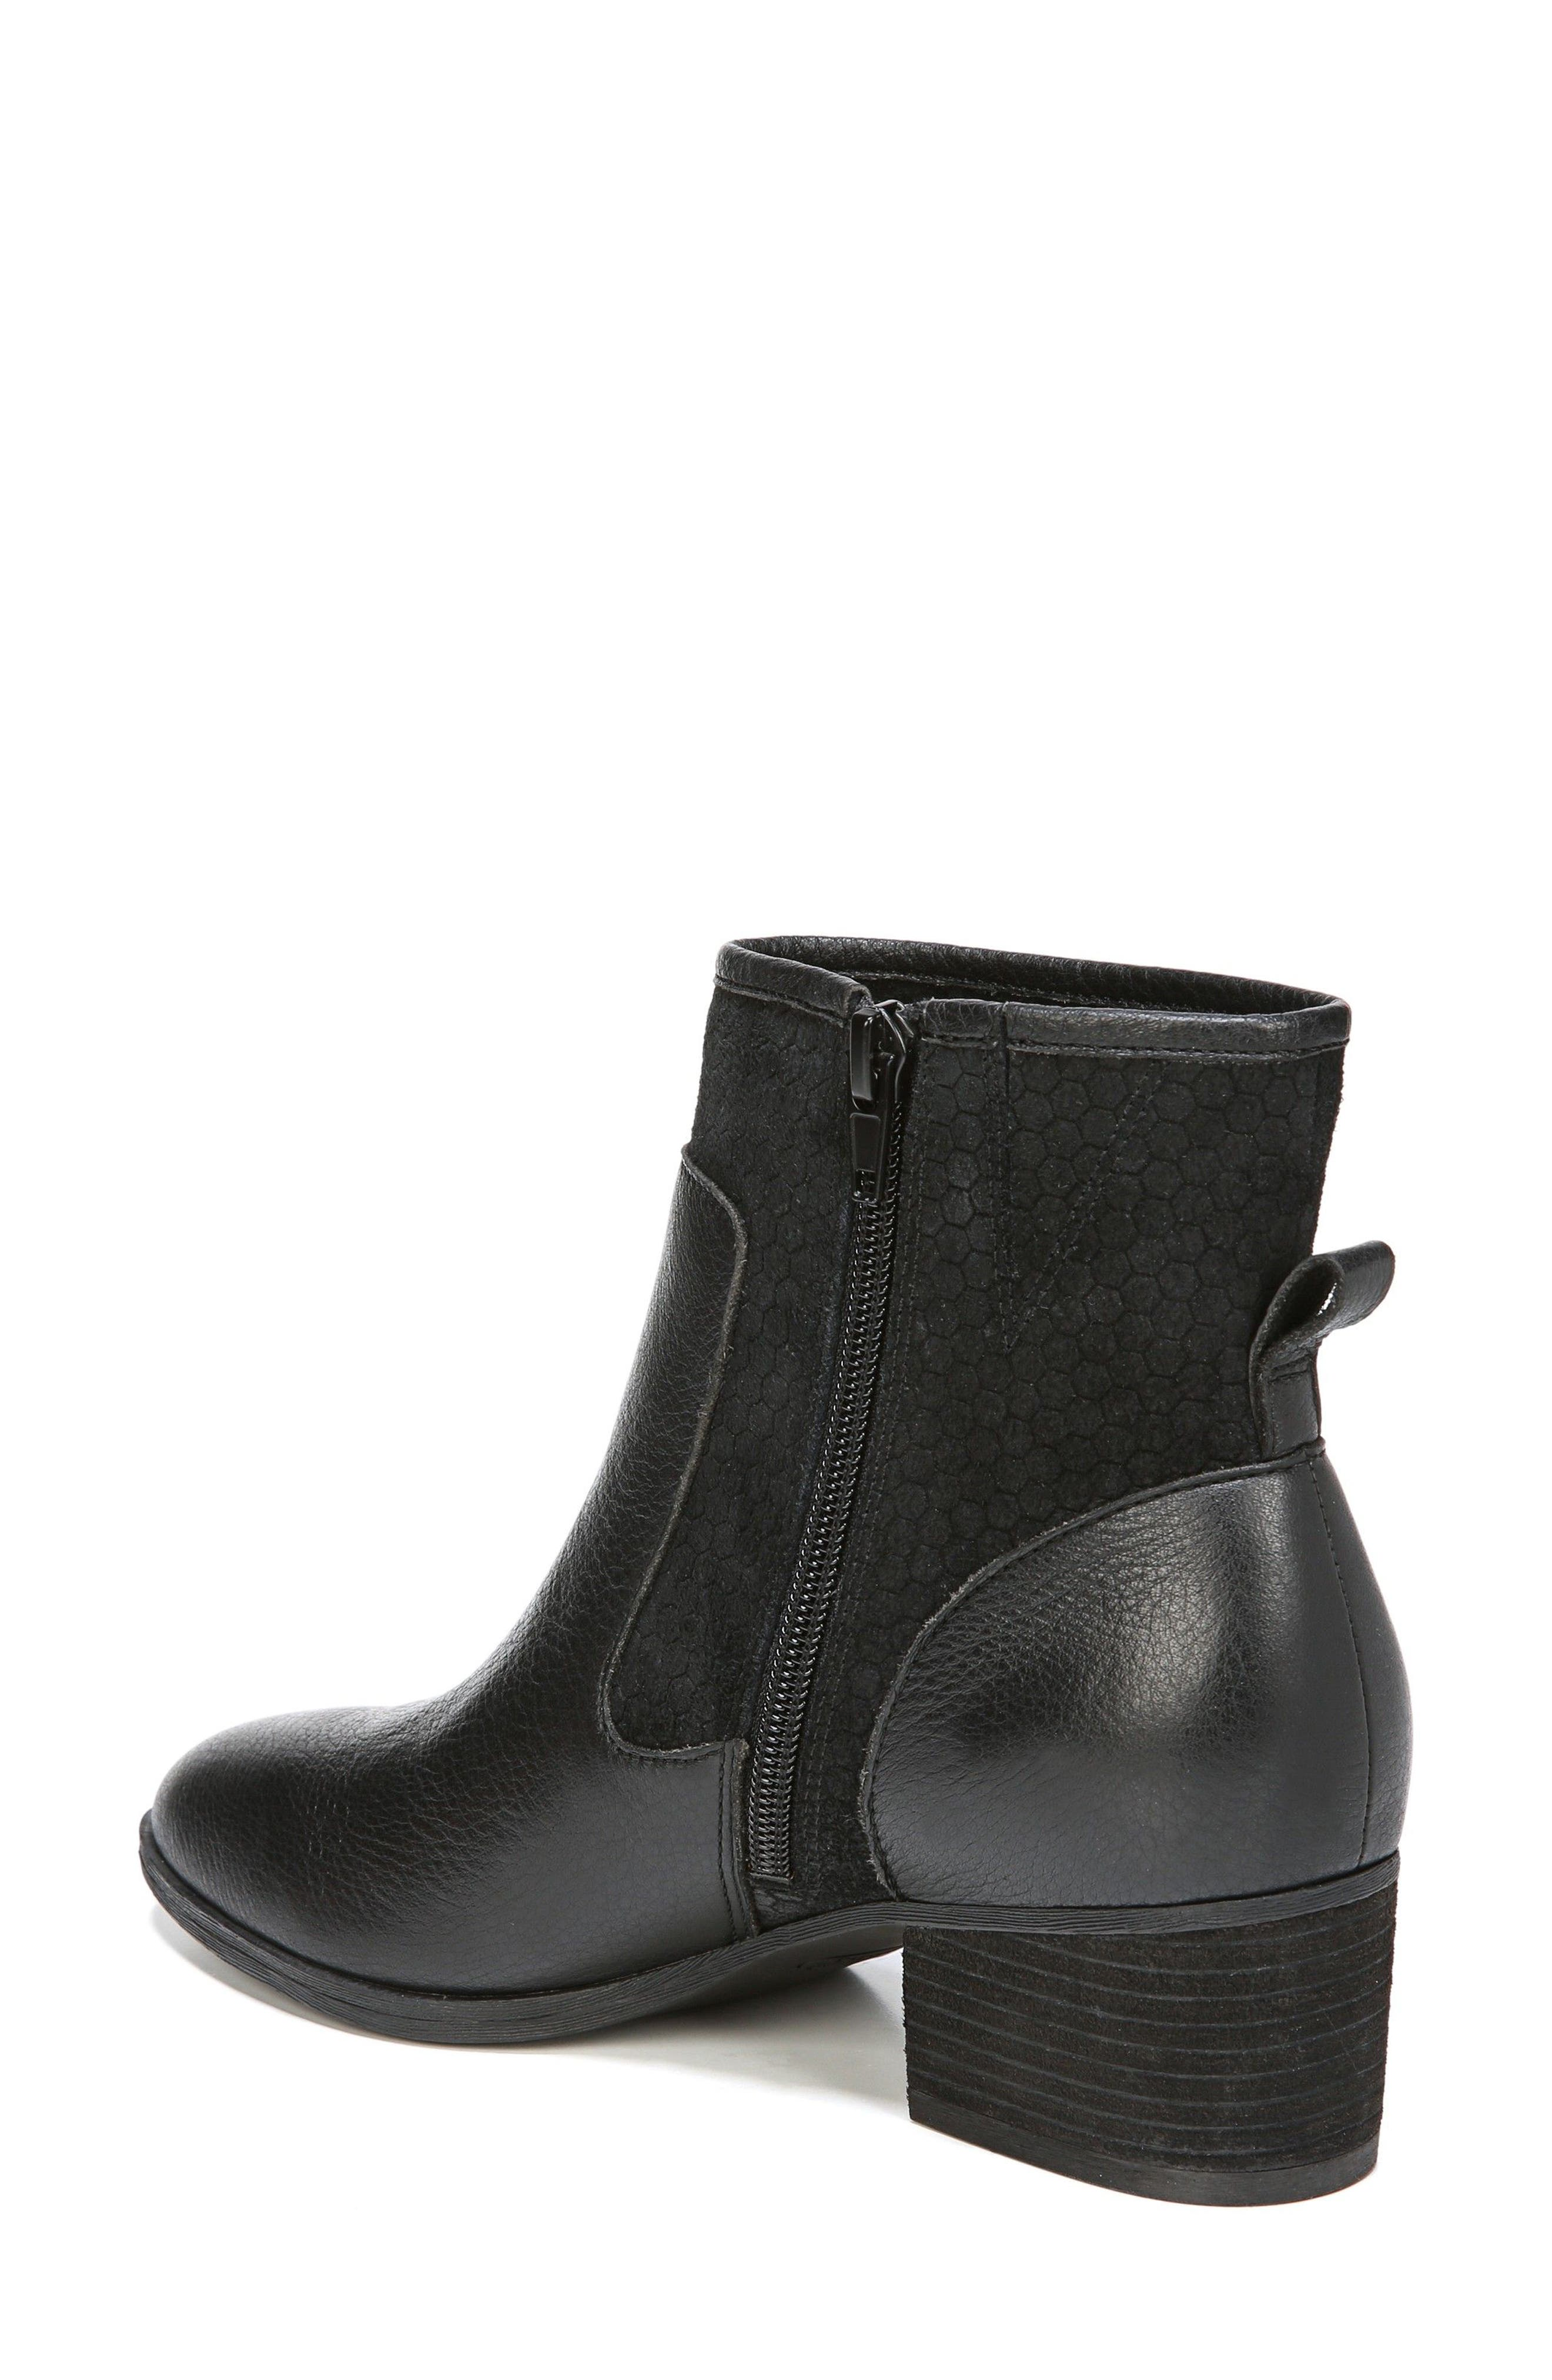 Tawny Bootie,                             Alternate thumbnail 2, color,                             001